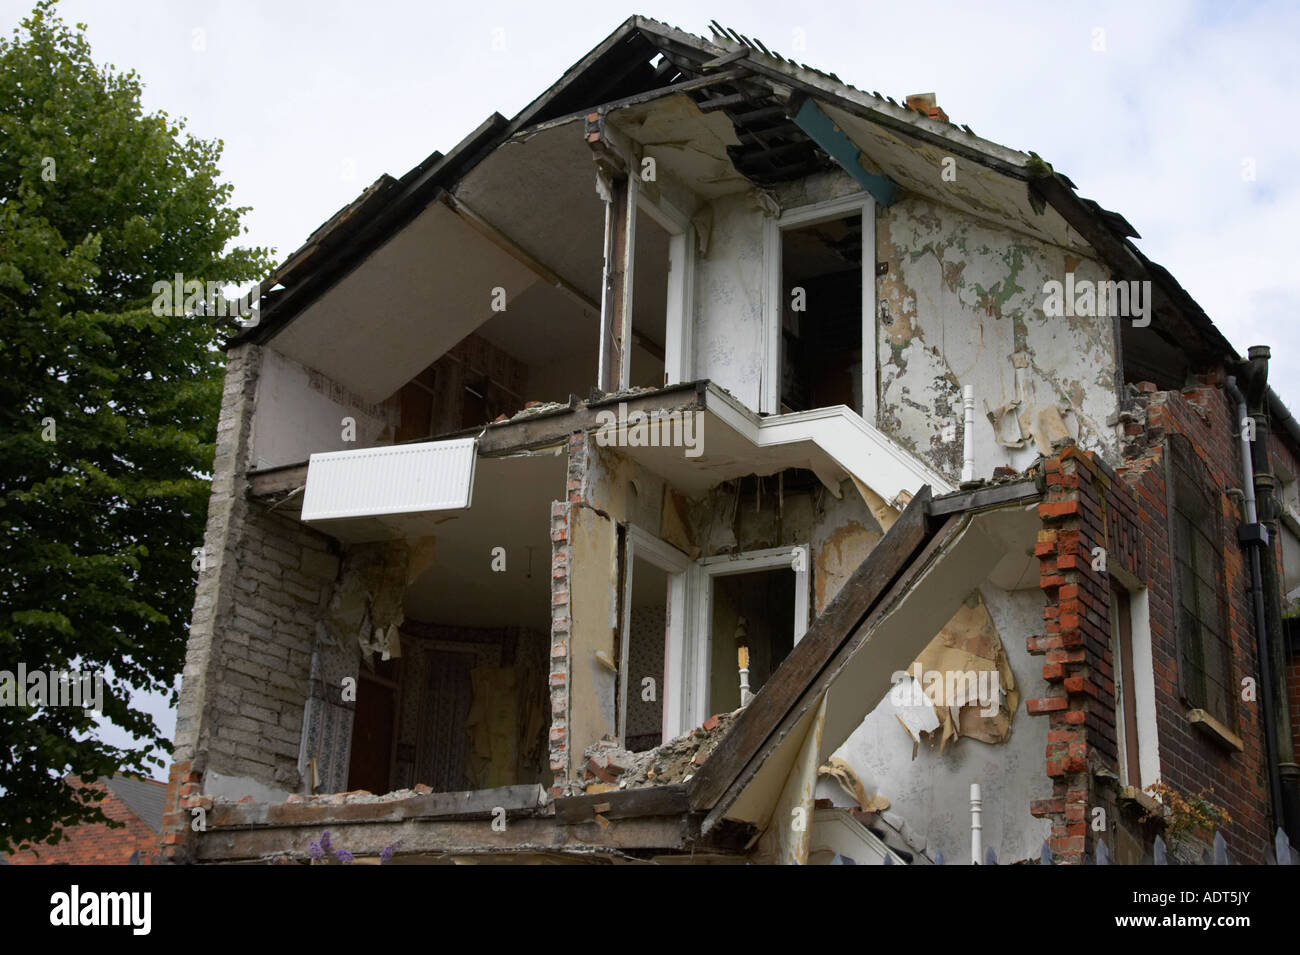 upper floors of partially destroyed old collapsed victorian house in Belfast - Stock Image